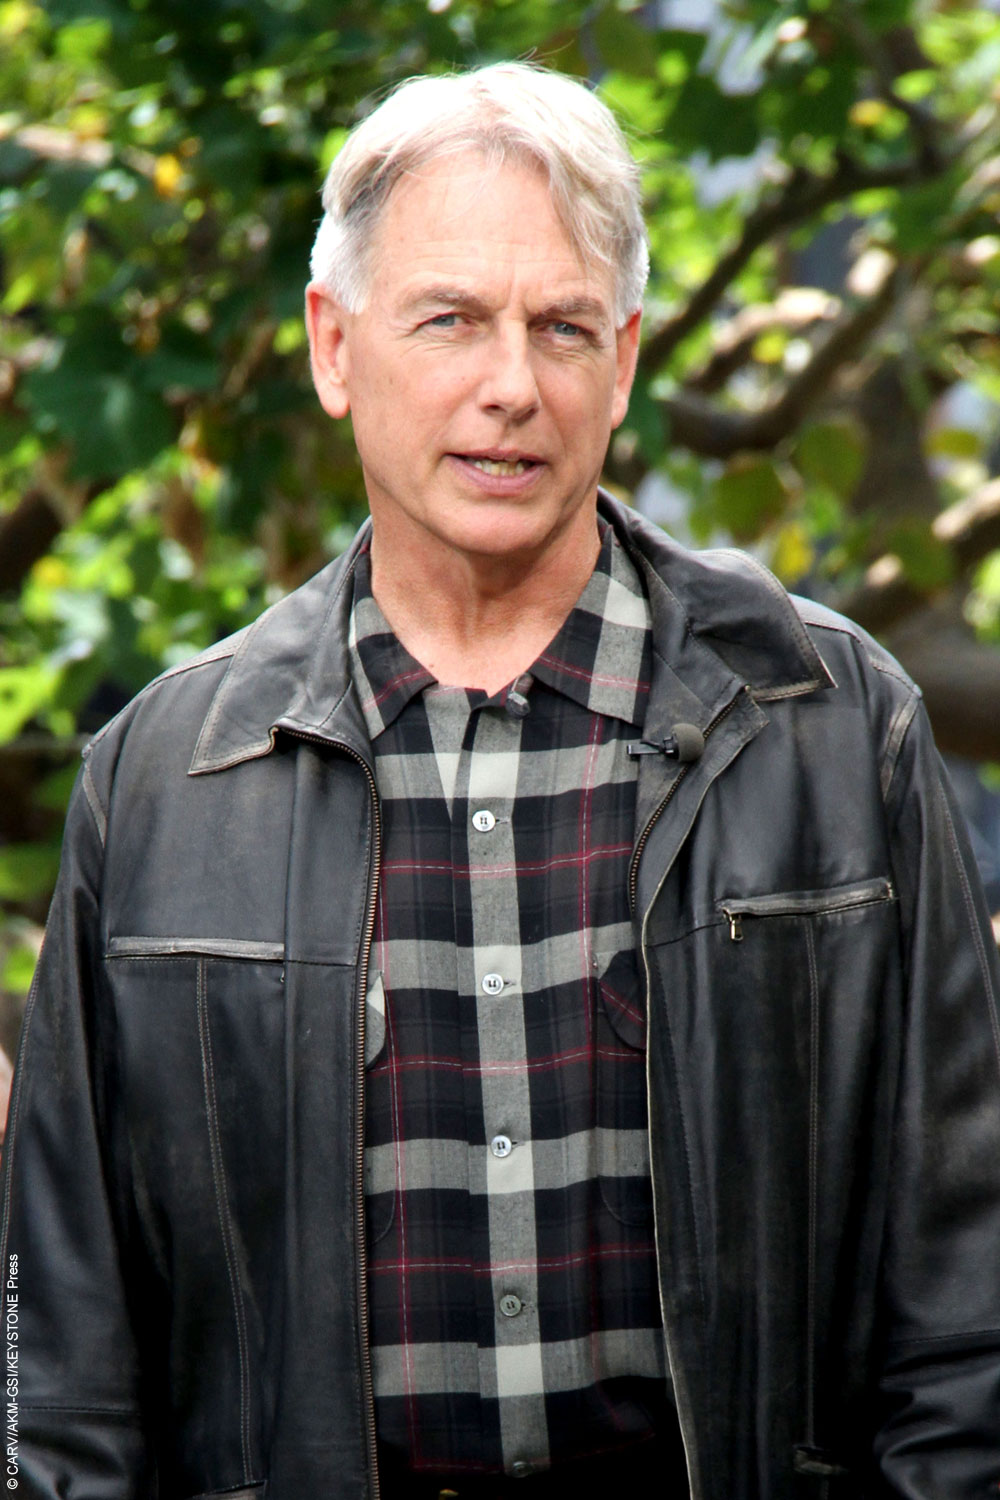 Mark Harmon has appeared on NCIS since it debuted in 2003. The crime drama series is one of the most-watched shows in the world. Mark earns $525,000 per episode.